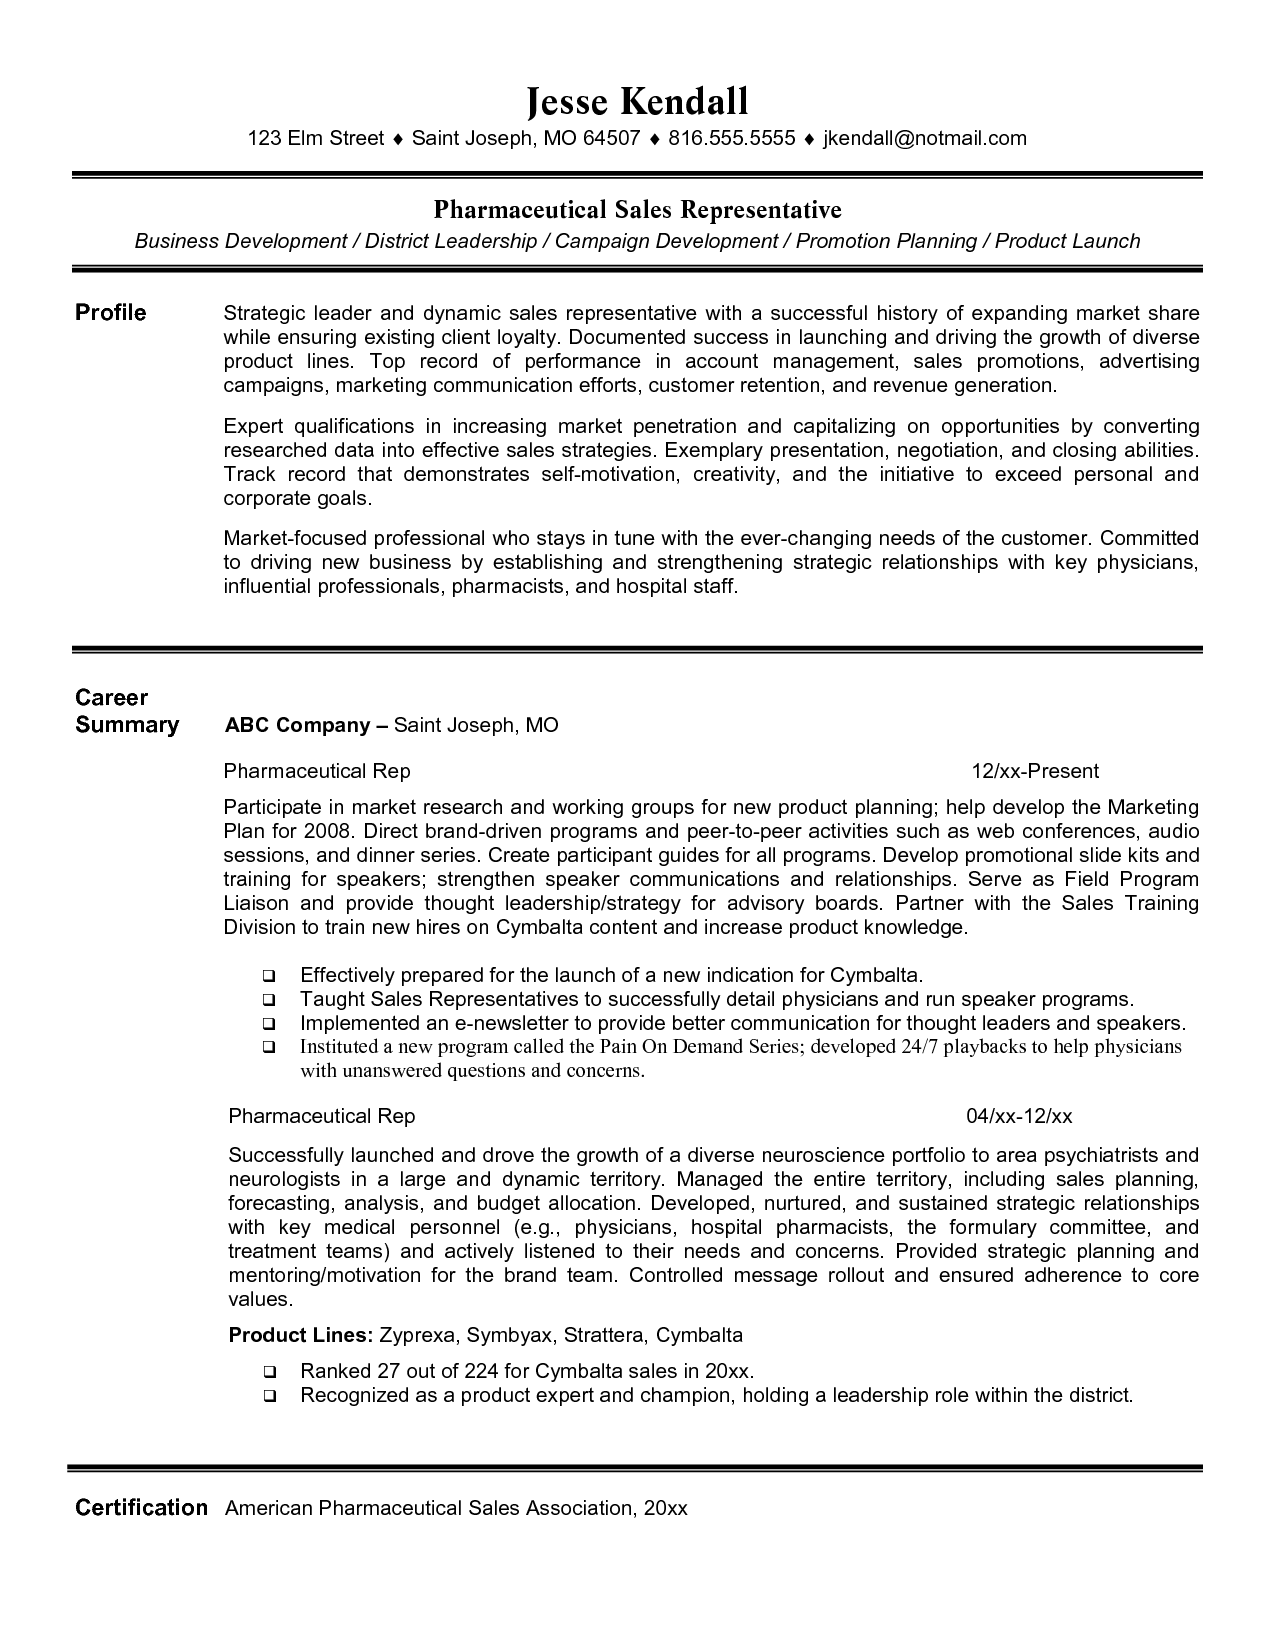 pharmaceutical sales rep resume sample entry level pharmaceutical sales resume - Sales Representative Resume Sample